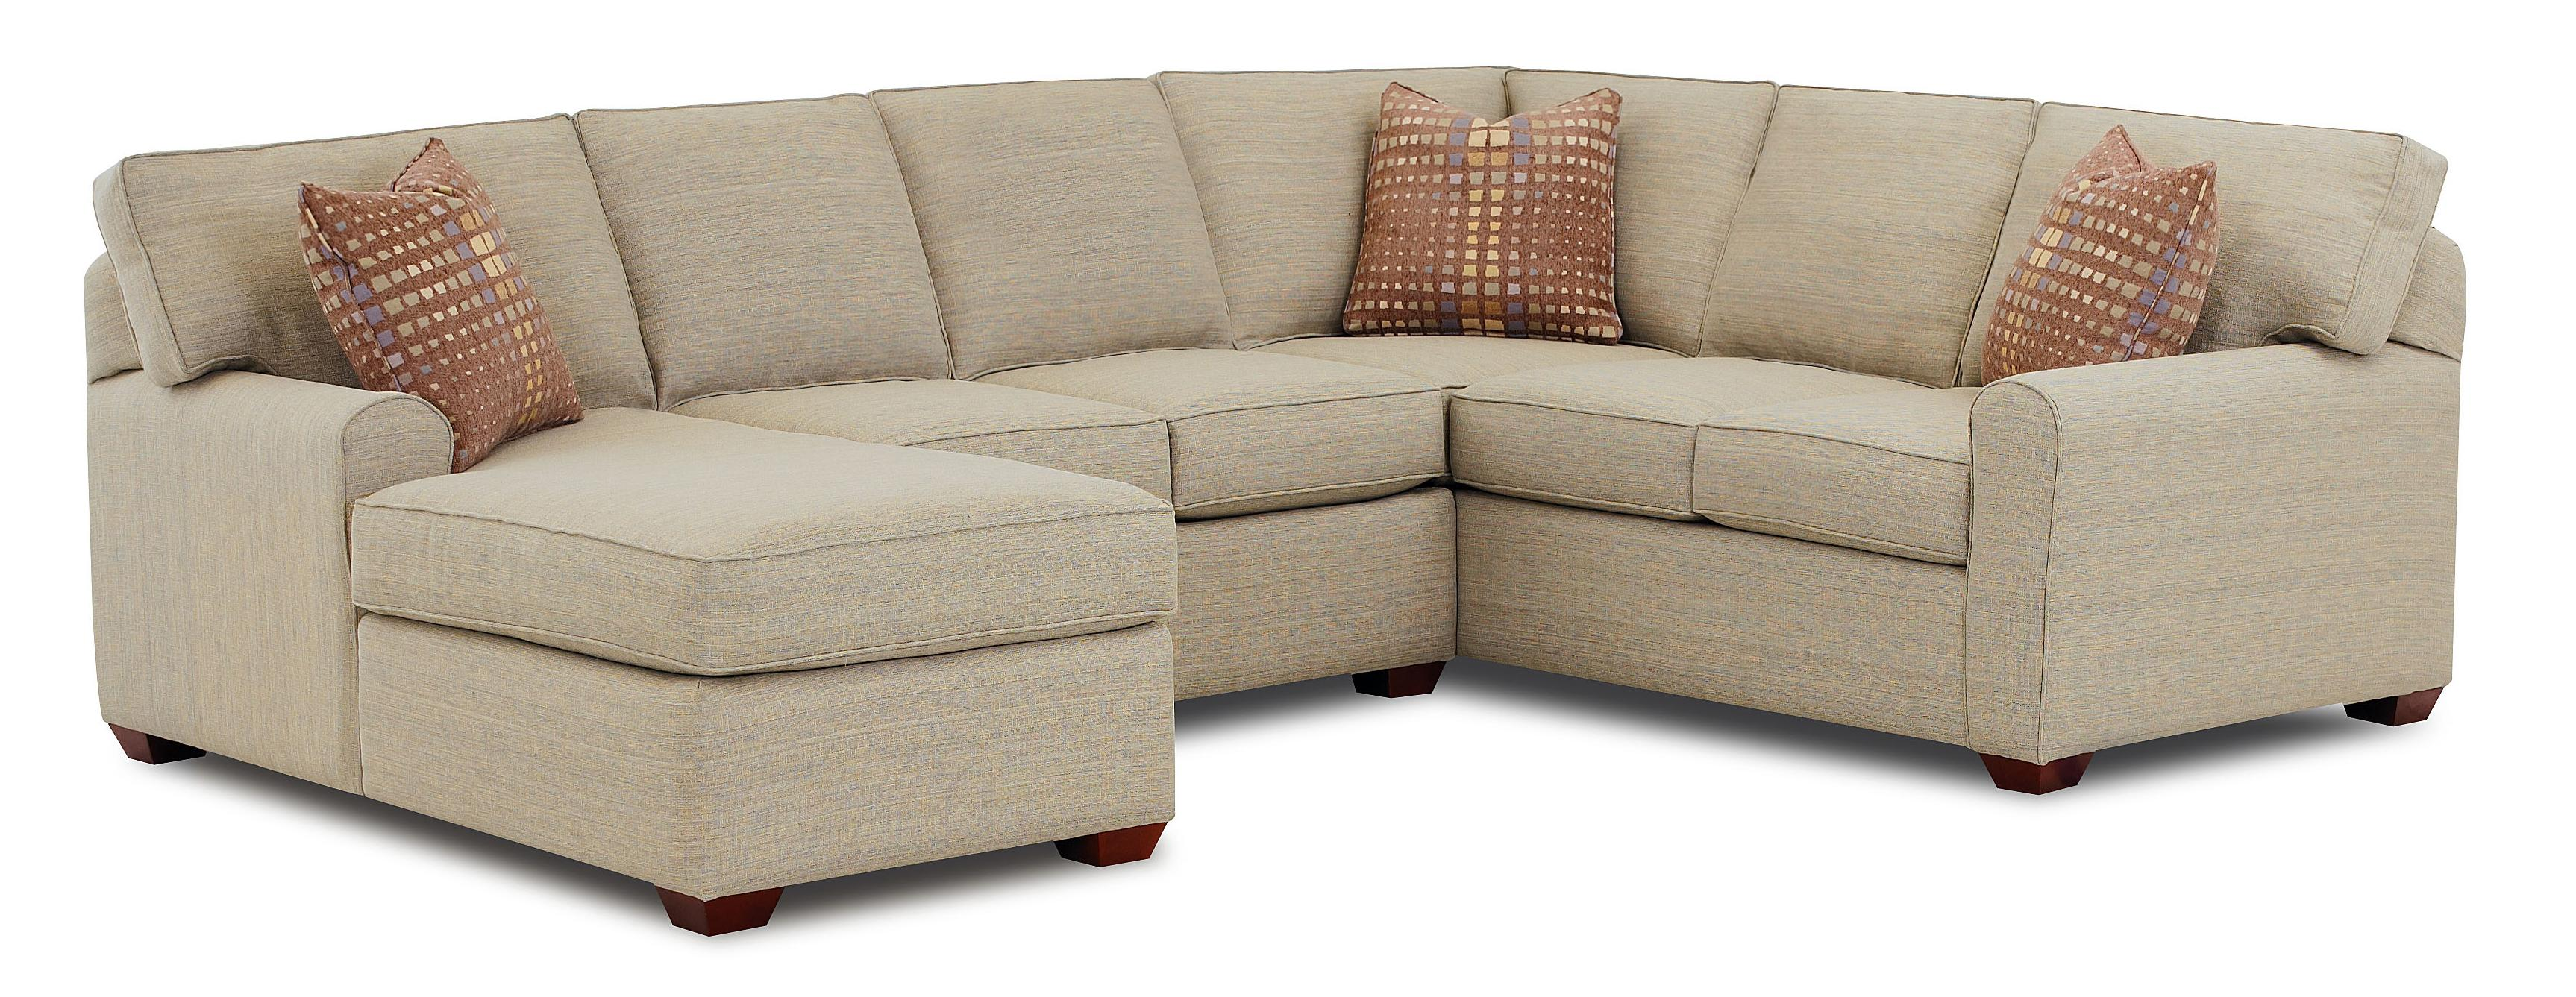 Charmant Sectional Sofa